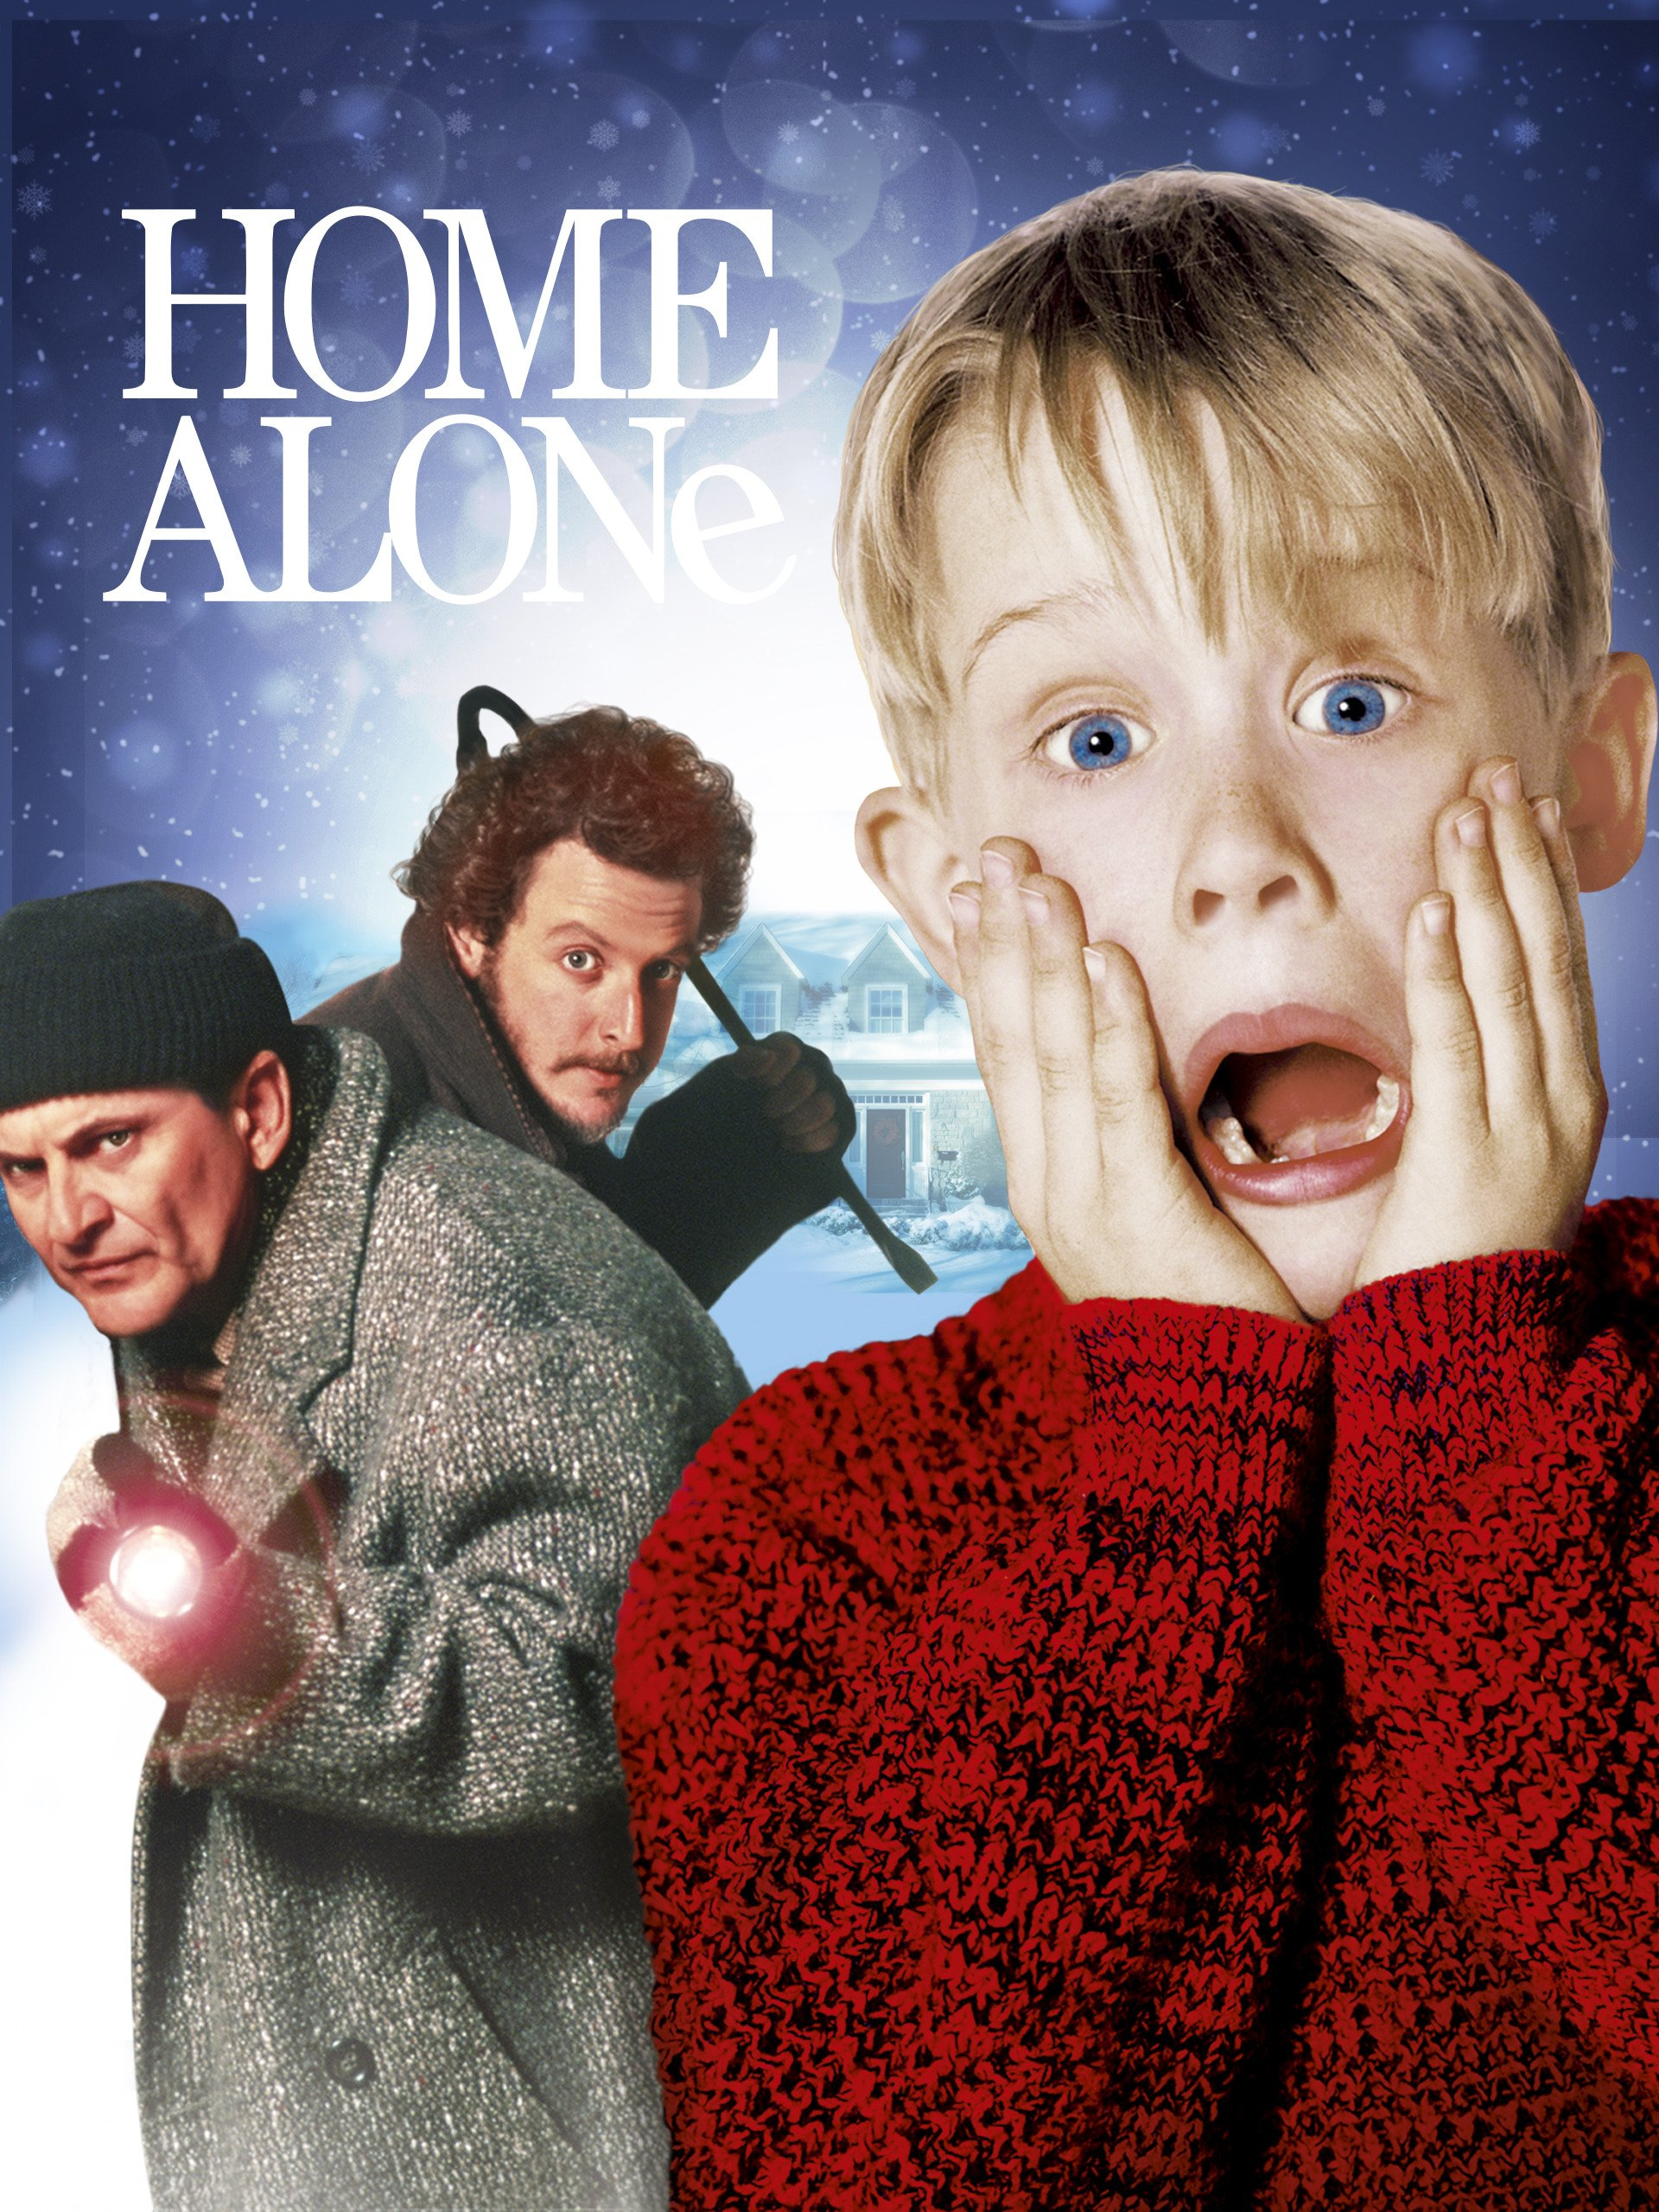 Home alone pictures movie reel.